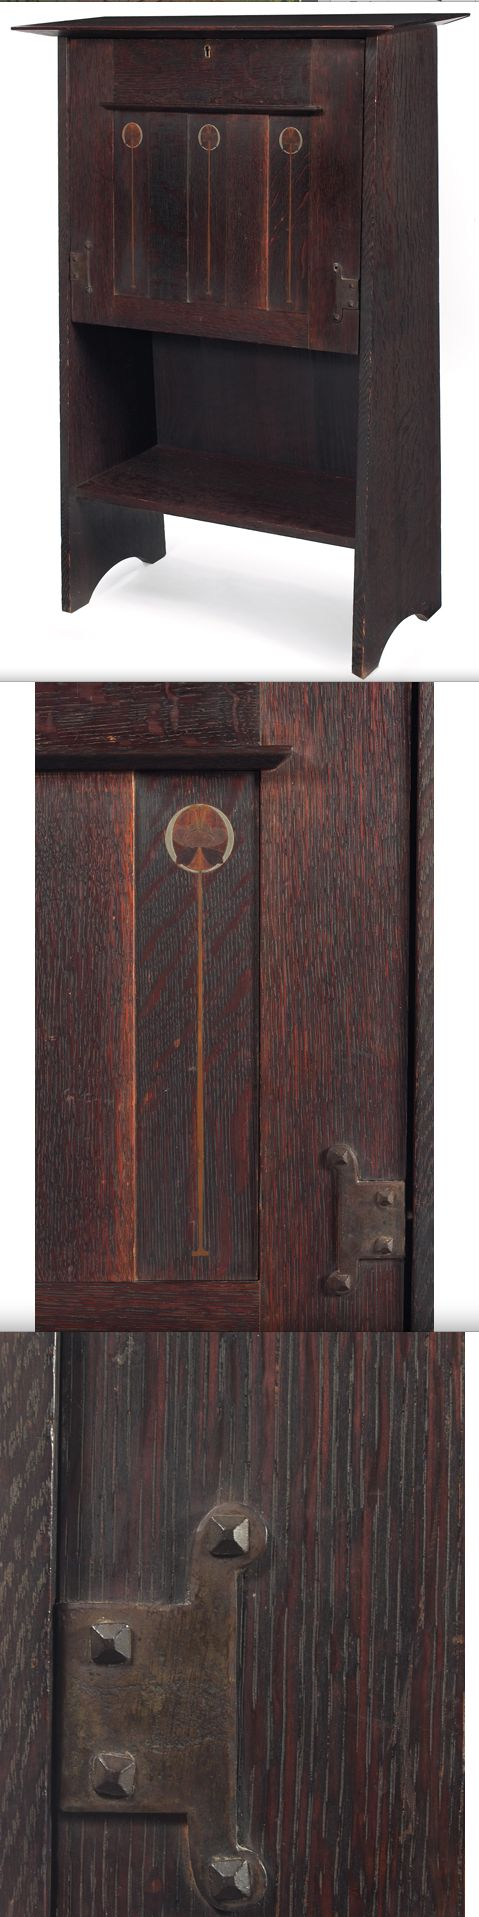 Antique arts and crafts furniture - Find This Pin And More On Arts And Crafts Furniture And Houses